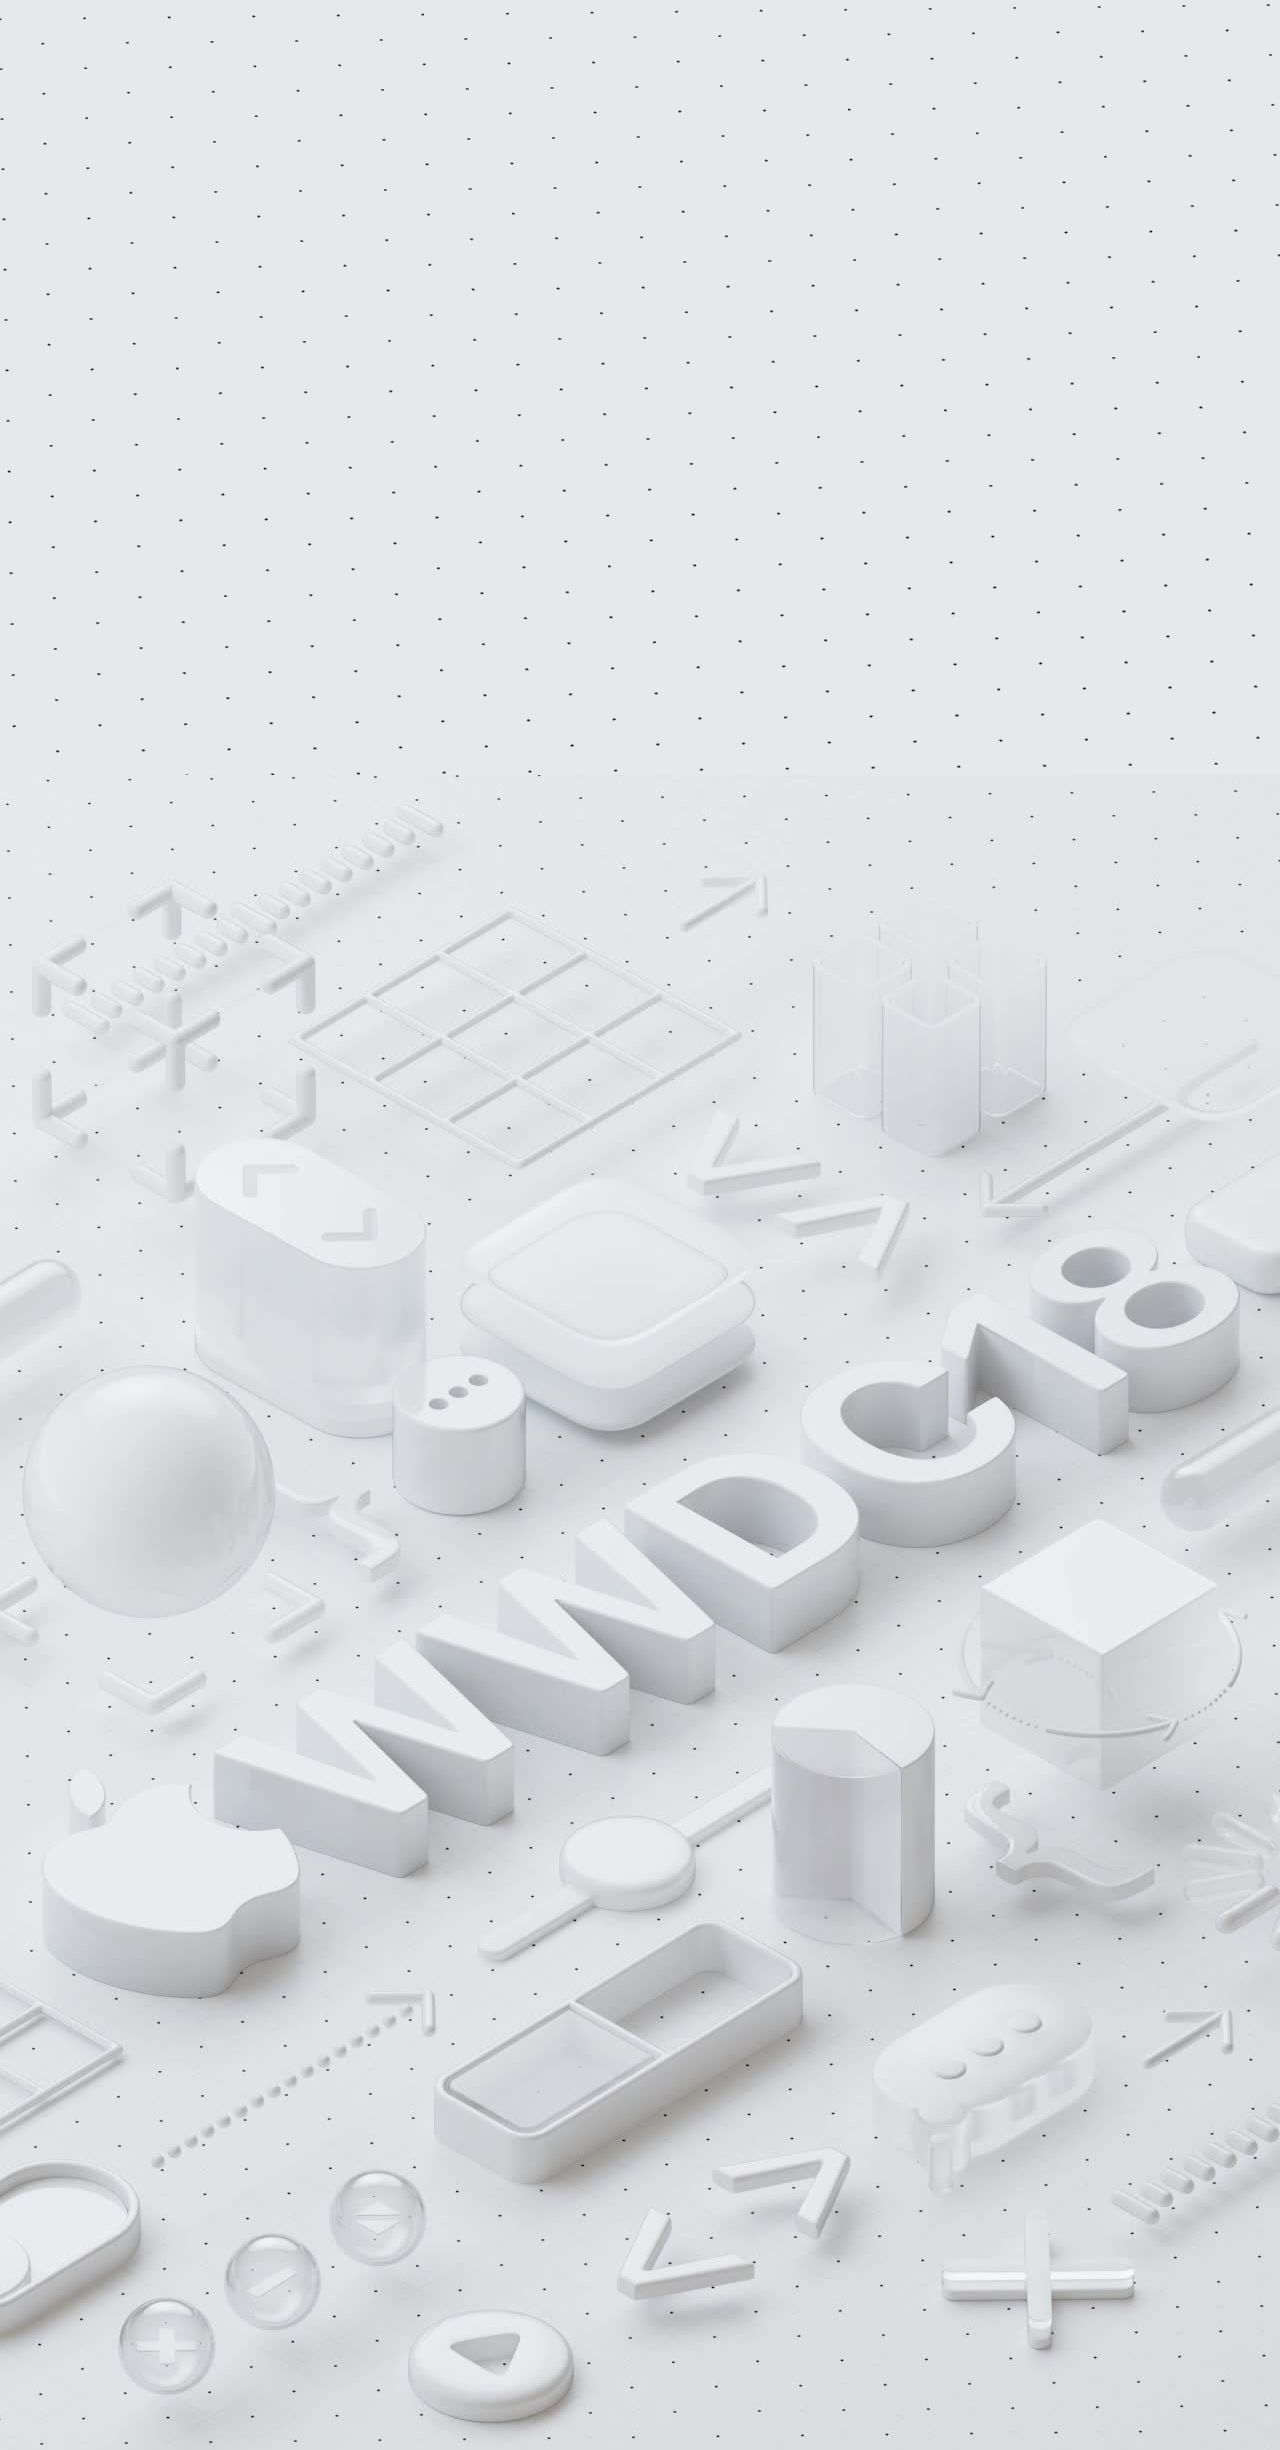 Wallpaper about Apple WWDC 2018 (With images) Apple